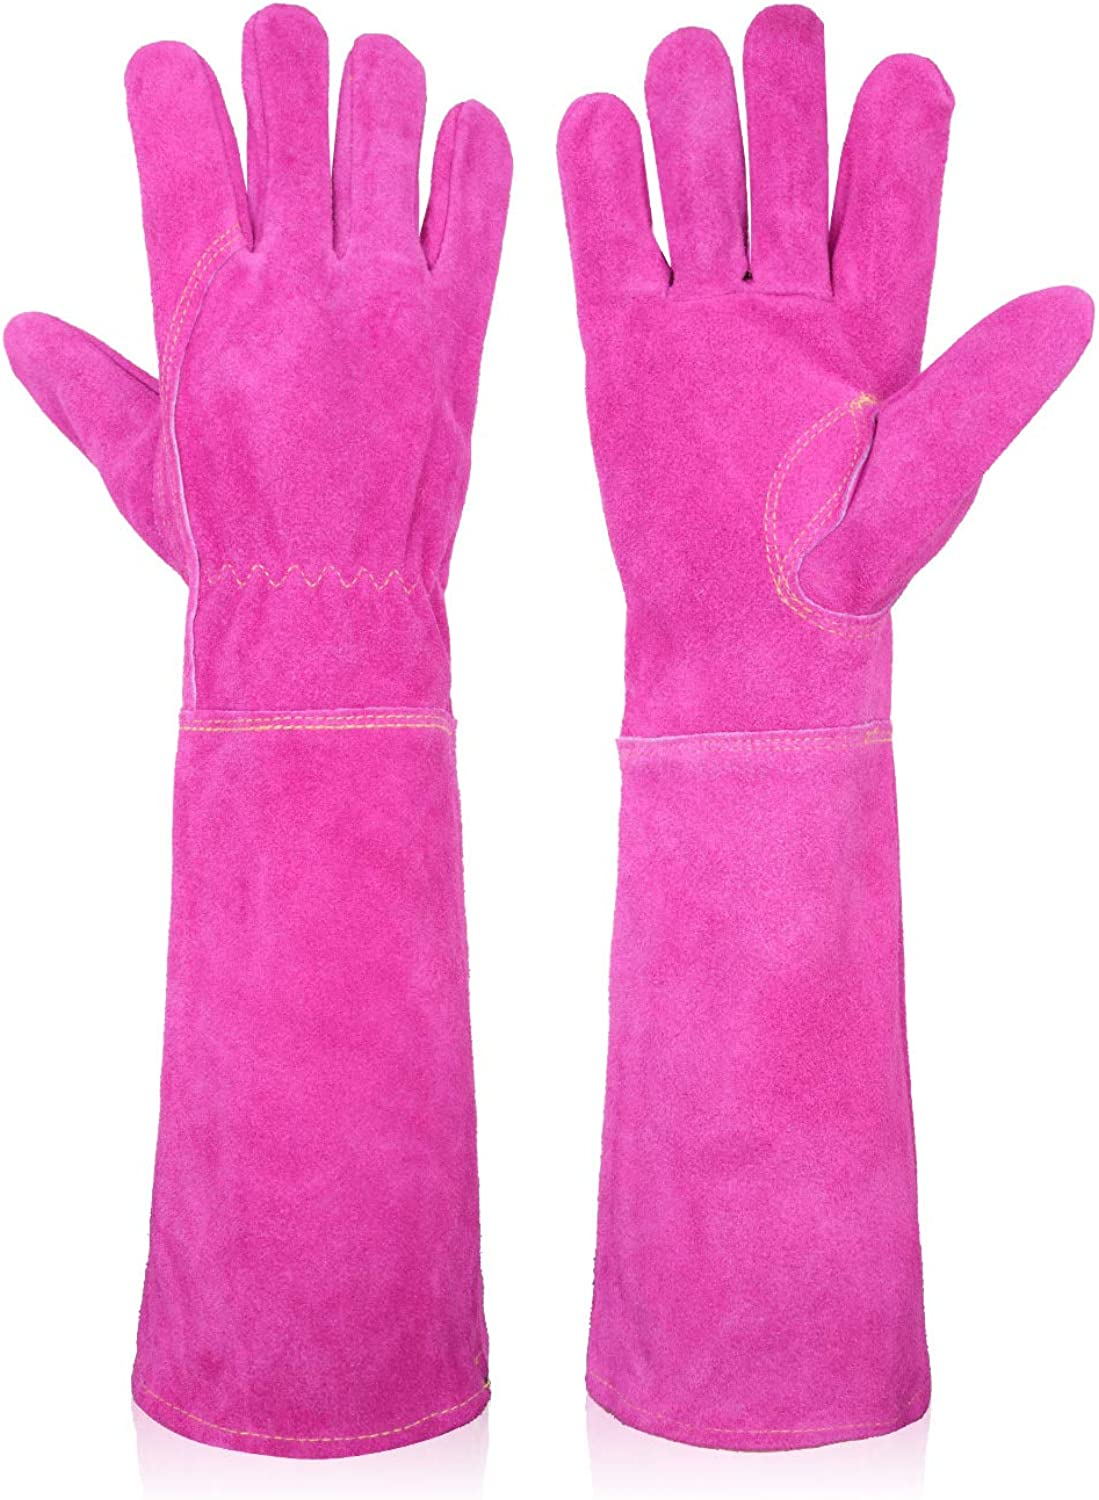 Rose Pruning Thorn Proof Gardening Gloves Women, Long Sleeve Garden Gloves Puncture Proof Gloves With Forearm Protection